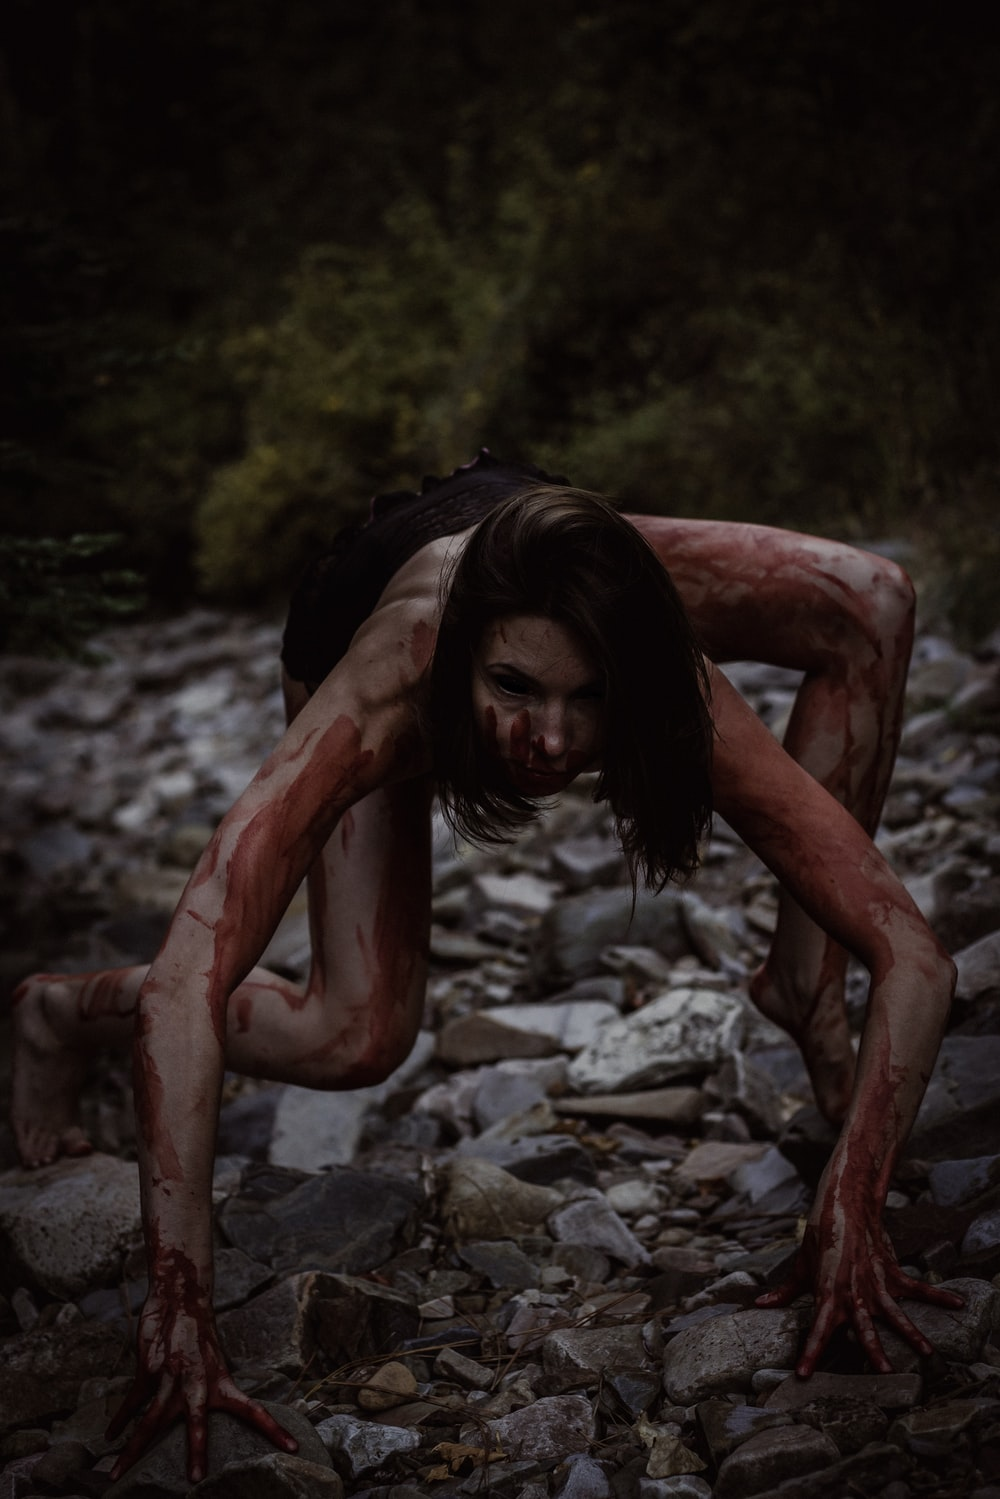 crawling woman covered with blood on stones